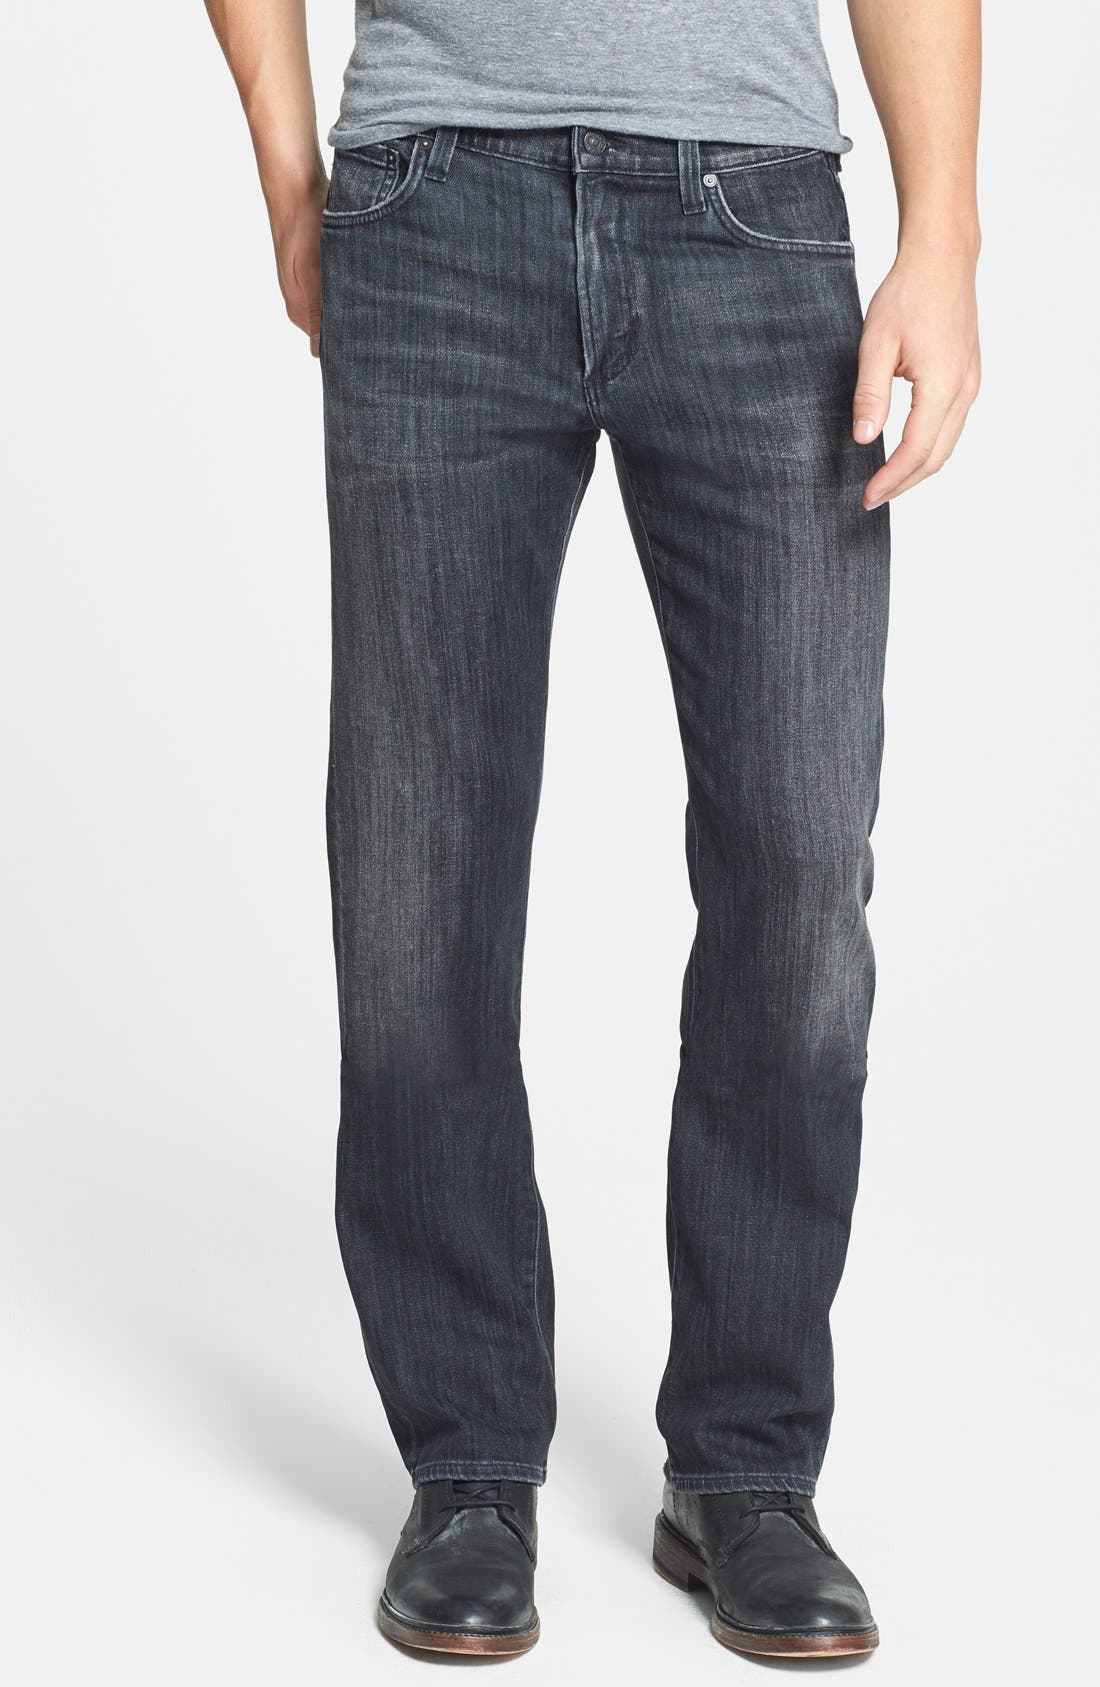 'Sid' Classic Straight Leg Jeans,                             Main thumbnail 1, color,                             Crow